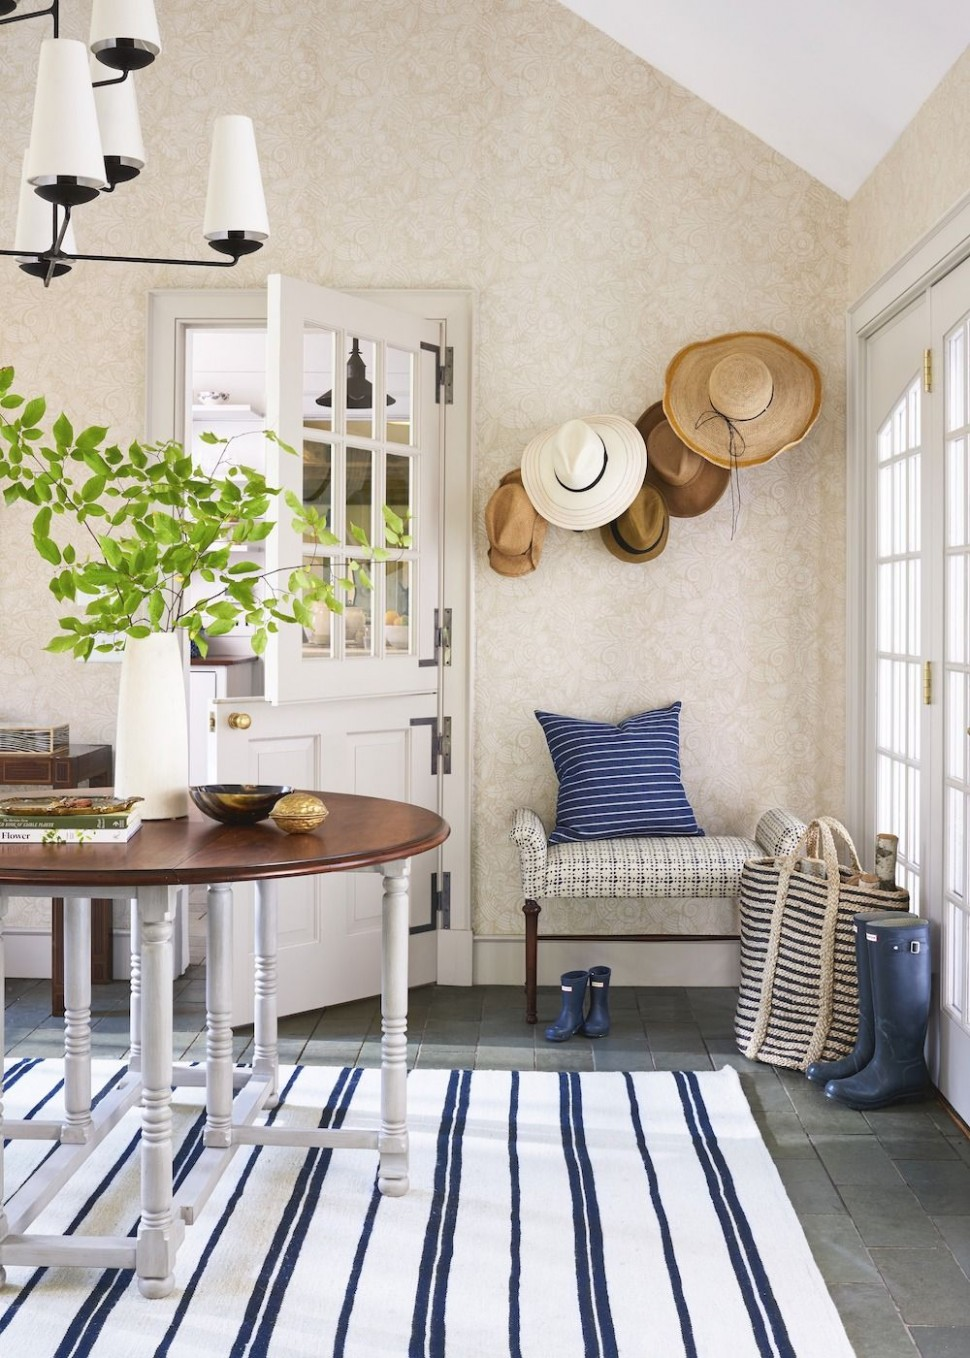 12 Creative Entryway Ideas - Decor Inspiration for Your Foyer - Dining Room Entryway Ideas